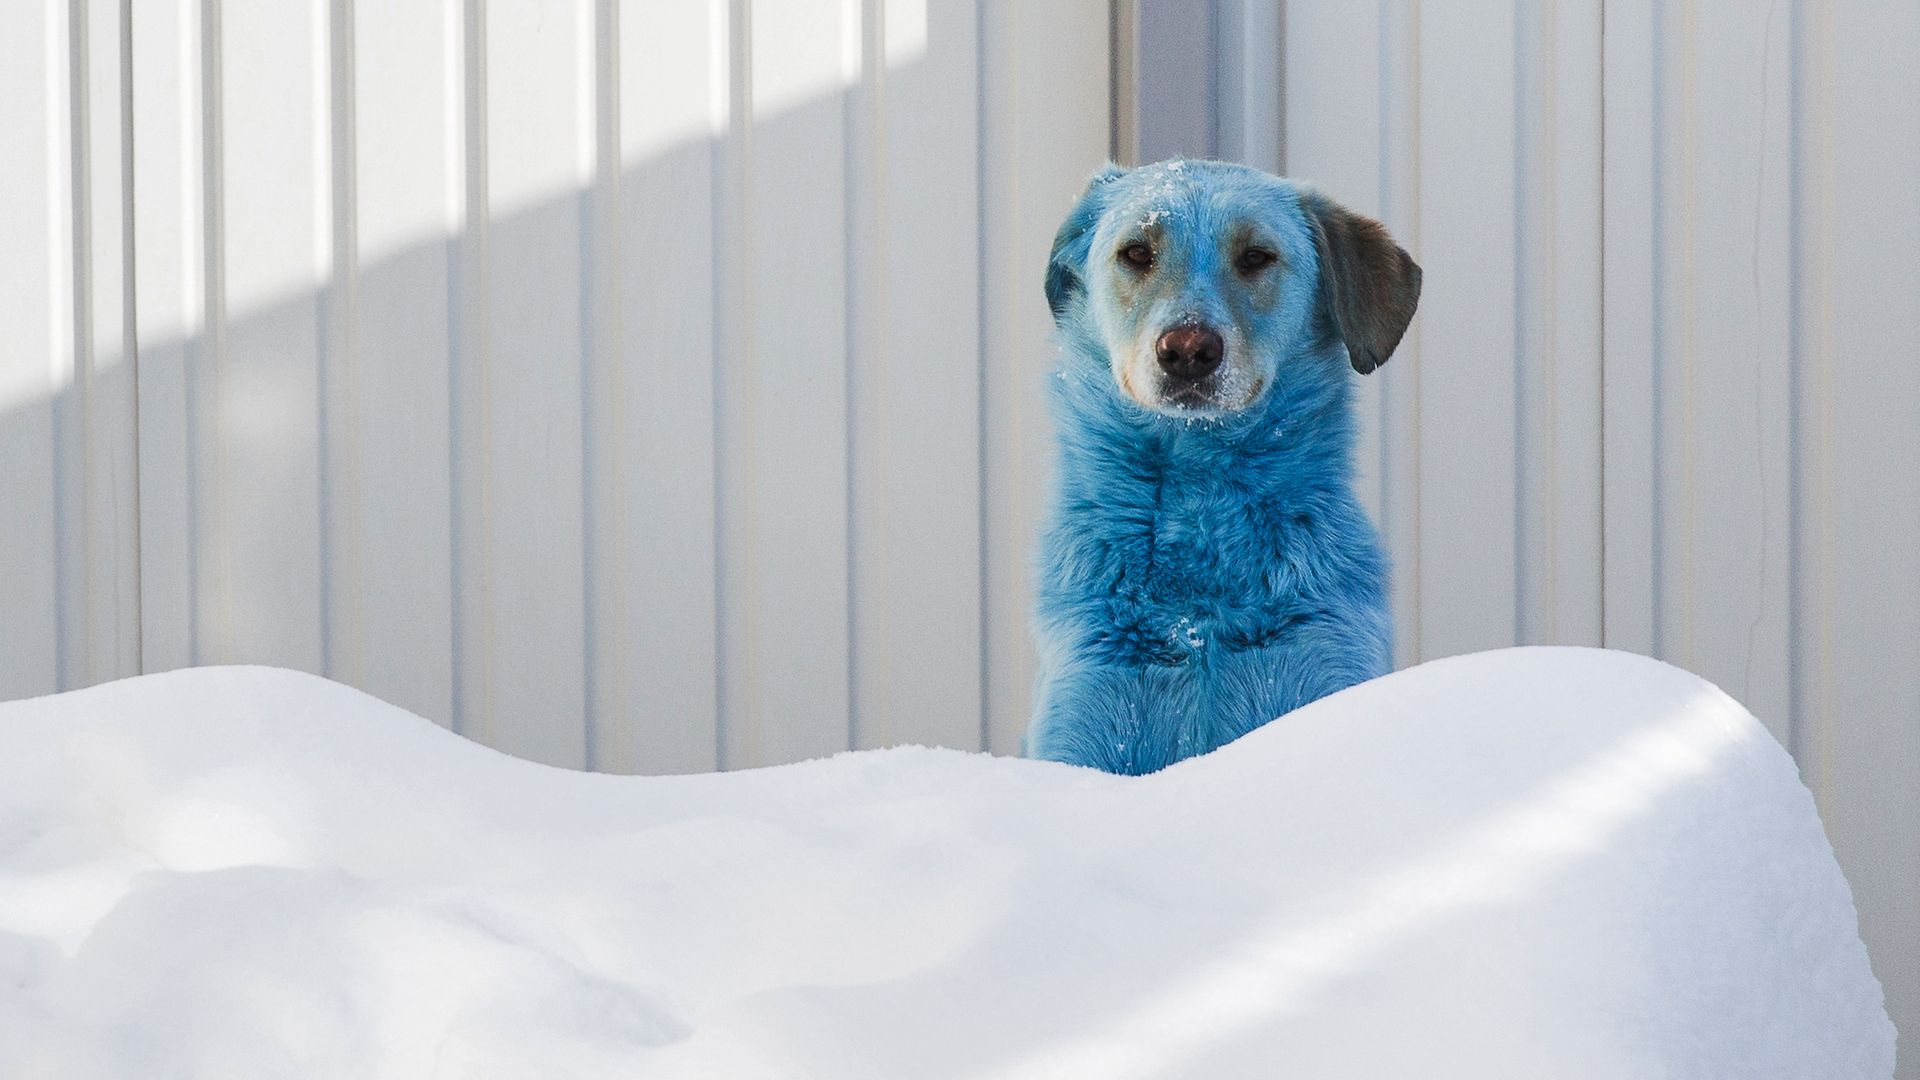 BLUE COLLAR: One of 13 stray dogs found with bright blue fur in Dzerzhinsk; the animals were taken in to the care of vets - Credit: Mikhail Solunin/TASS